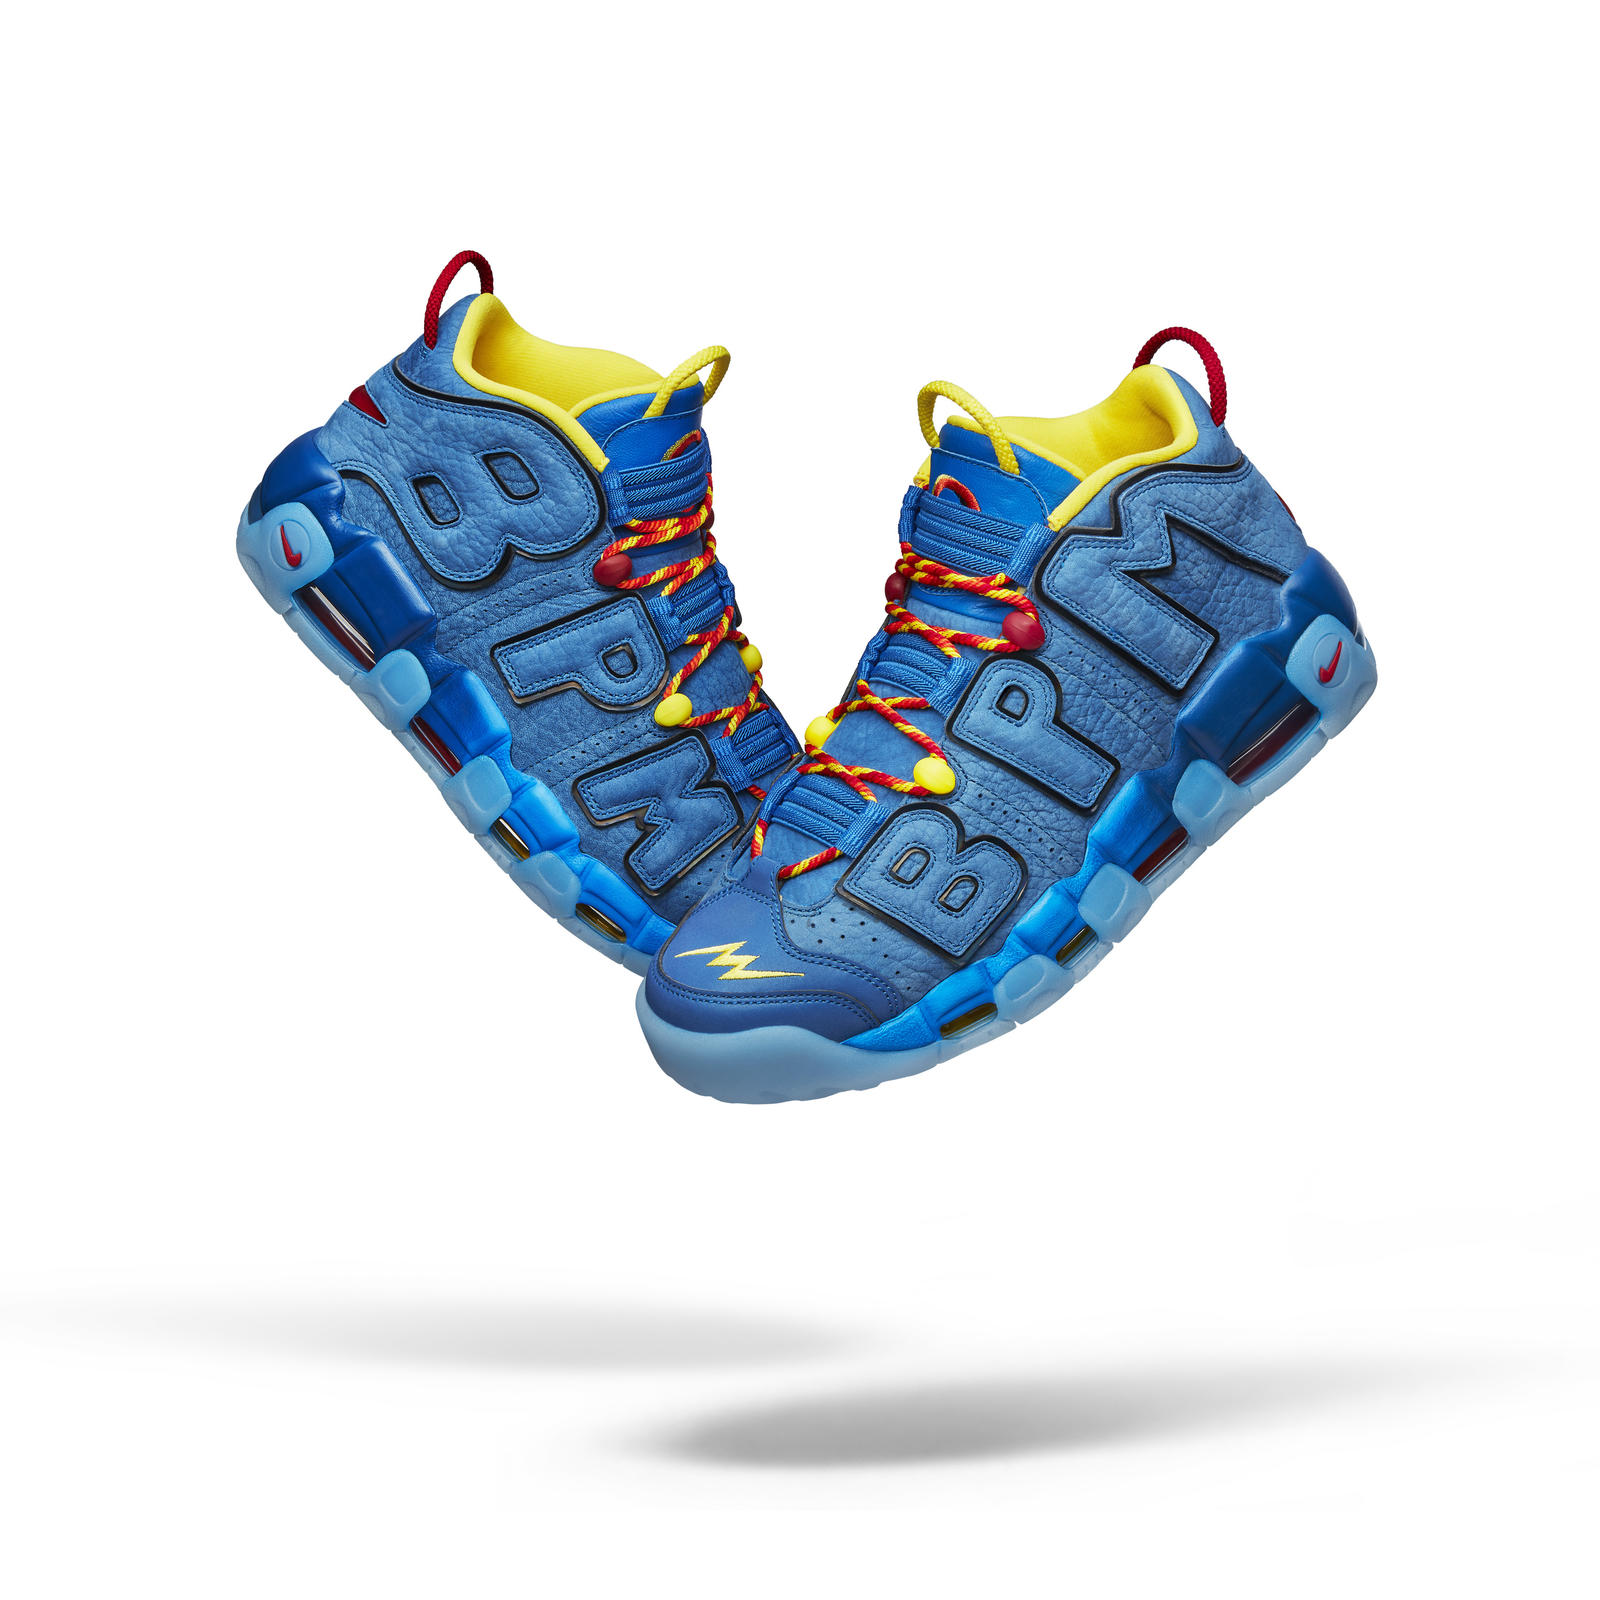 abfbd7a8e56f Nike Air More Uptempo. What the Doernbecher Freestyle Program Means to the  Sneaker Community 11